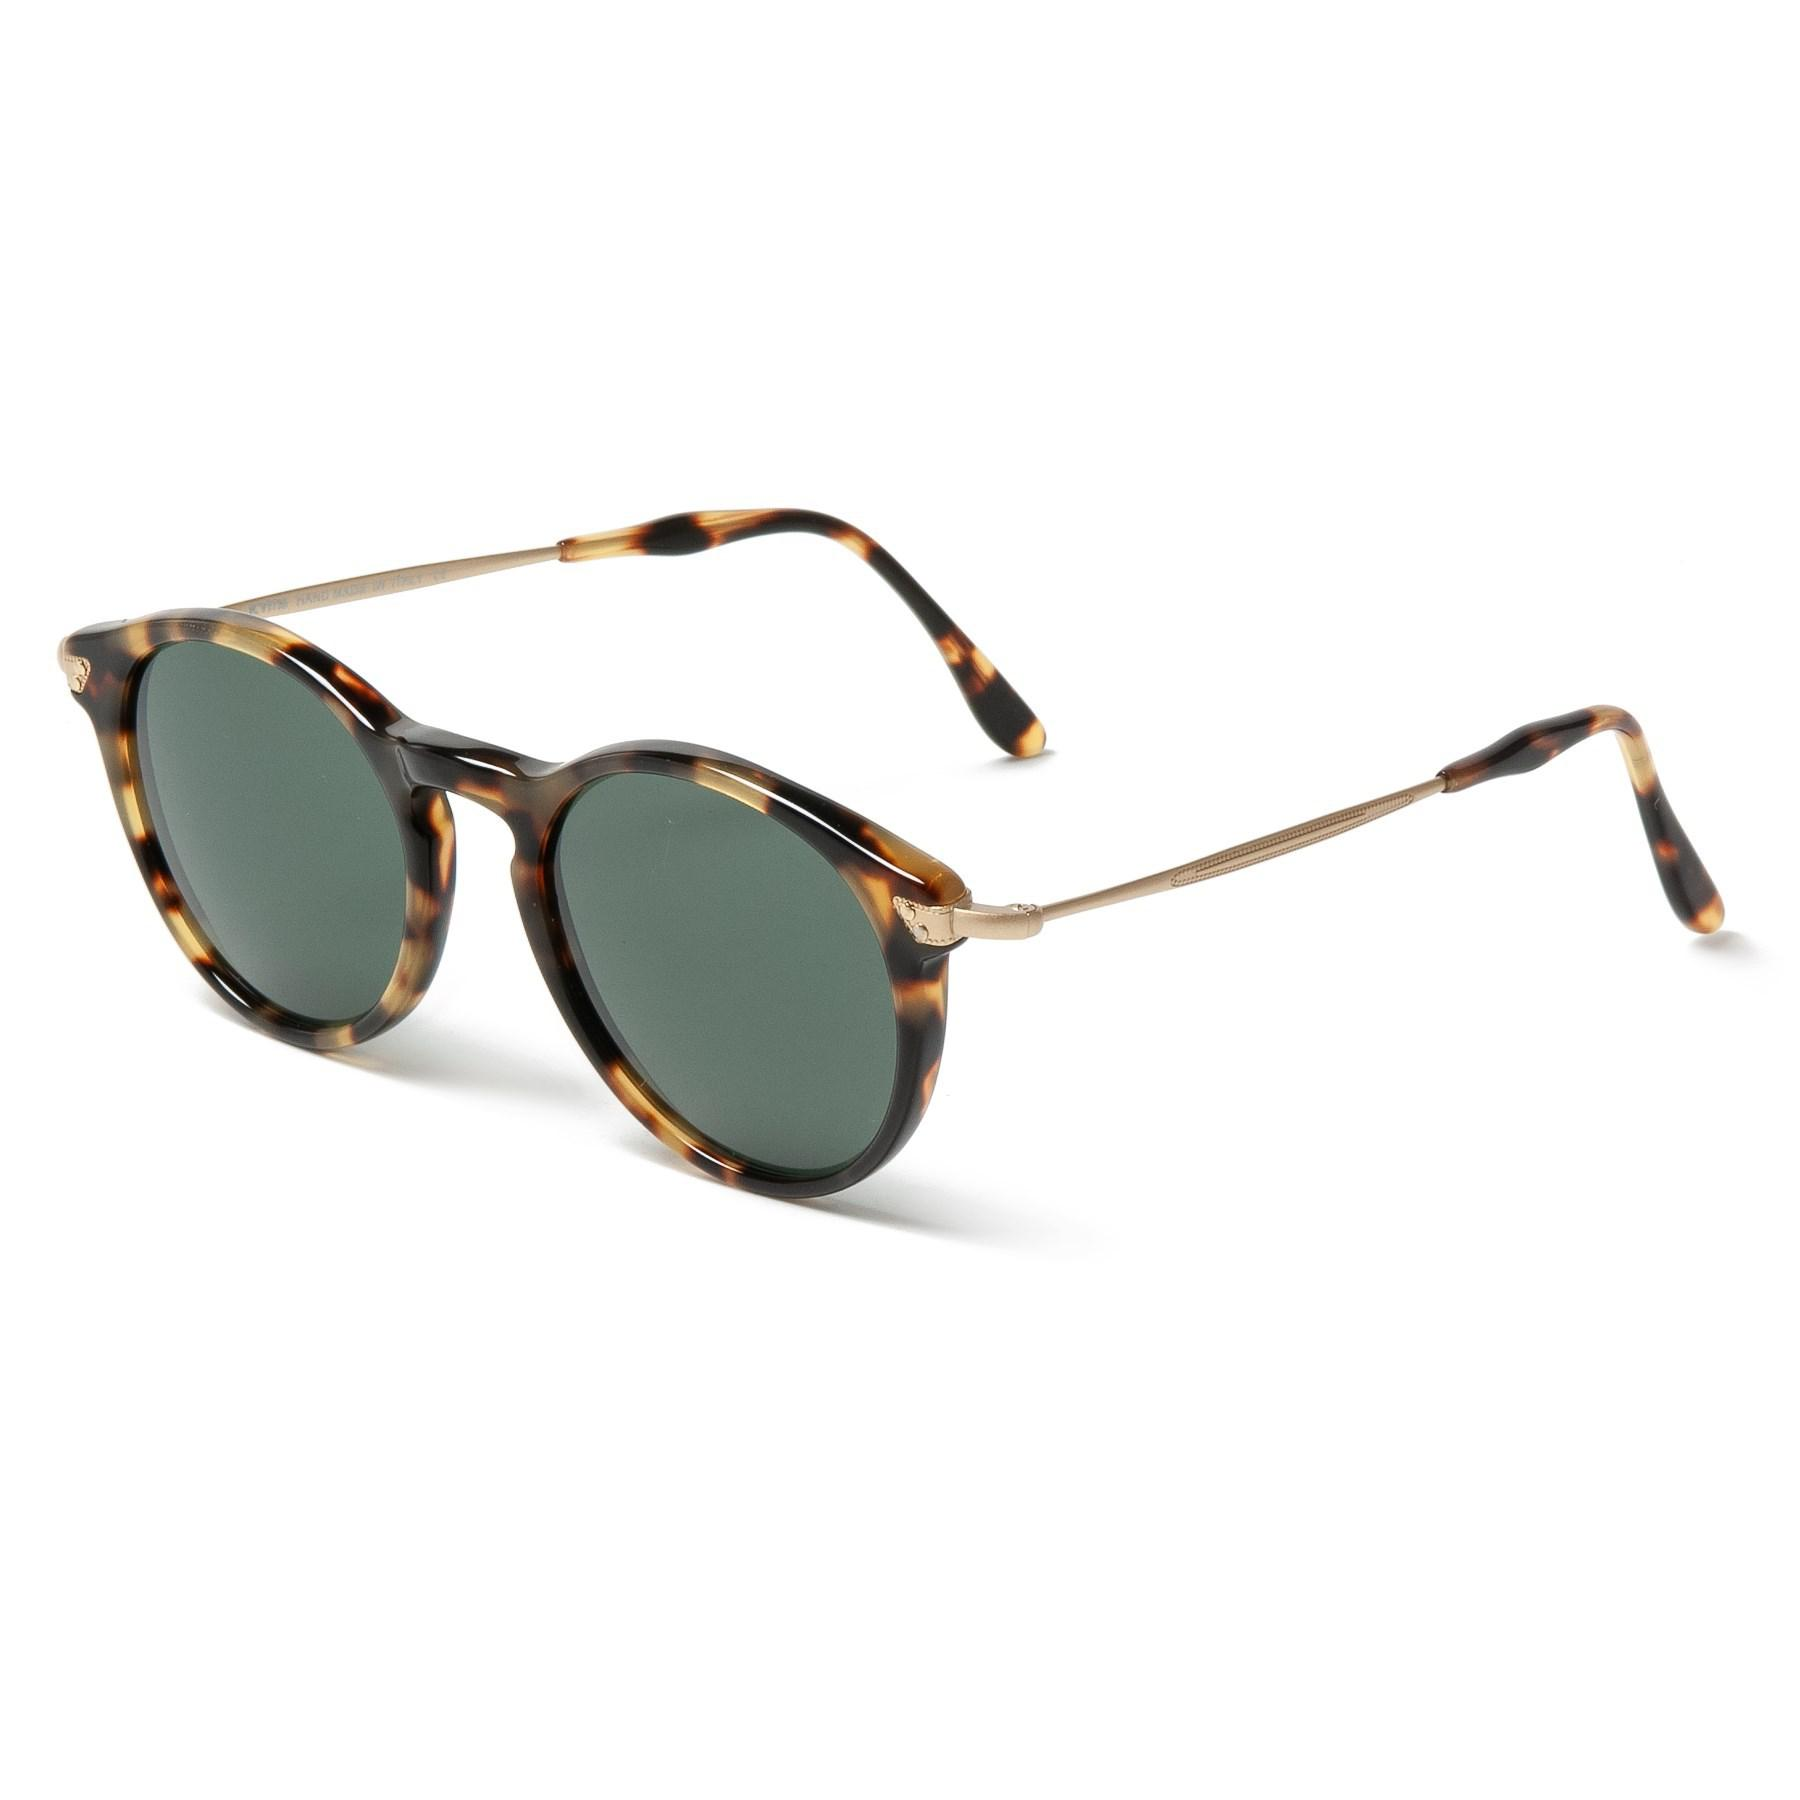 7c64ba162a9 Lyst - Kyme Mark Sunglasses (for Men And Women) in Green for Men